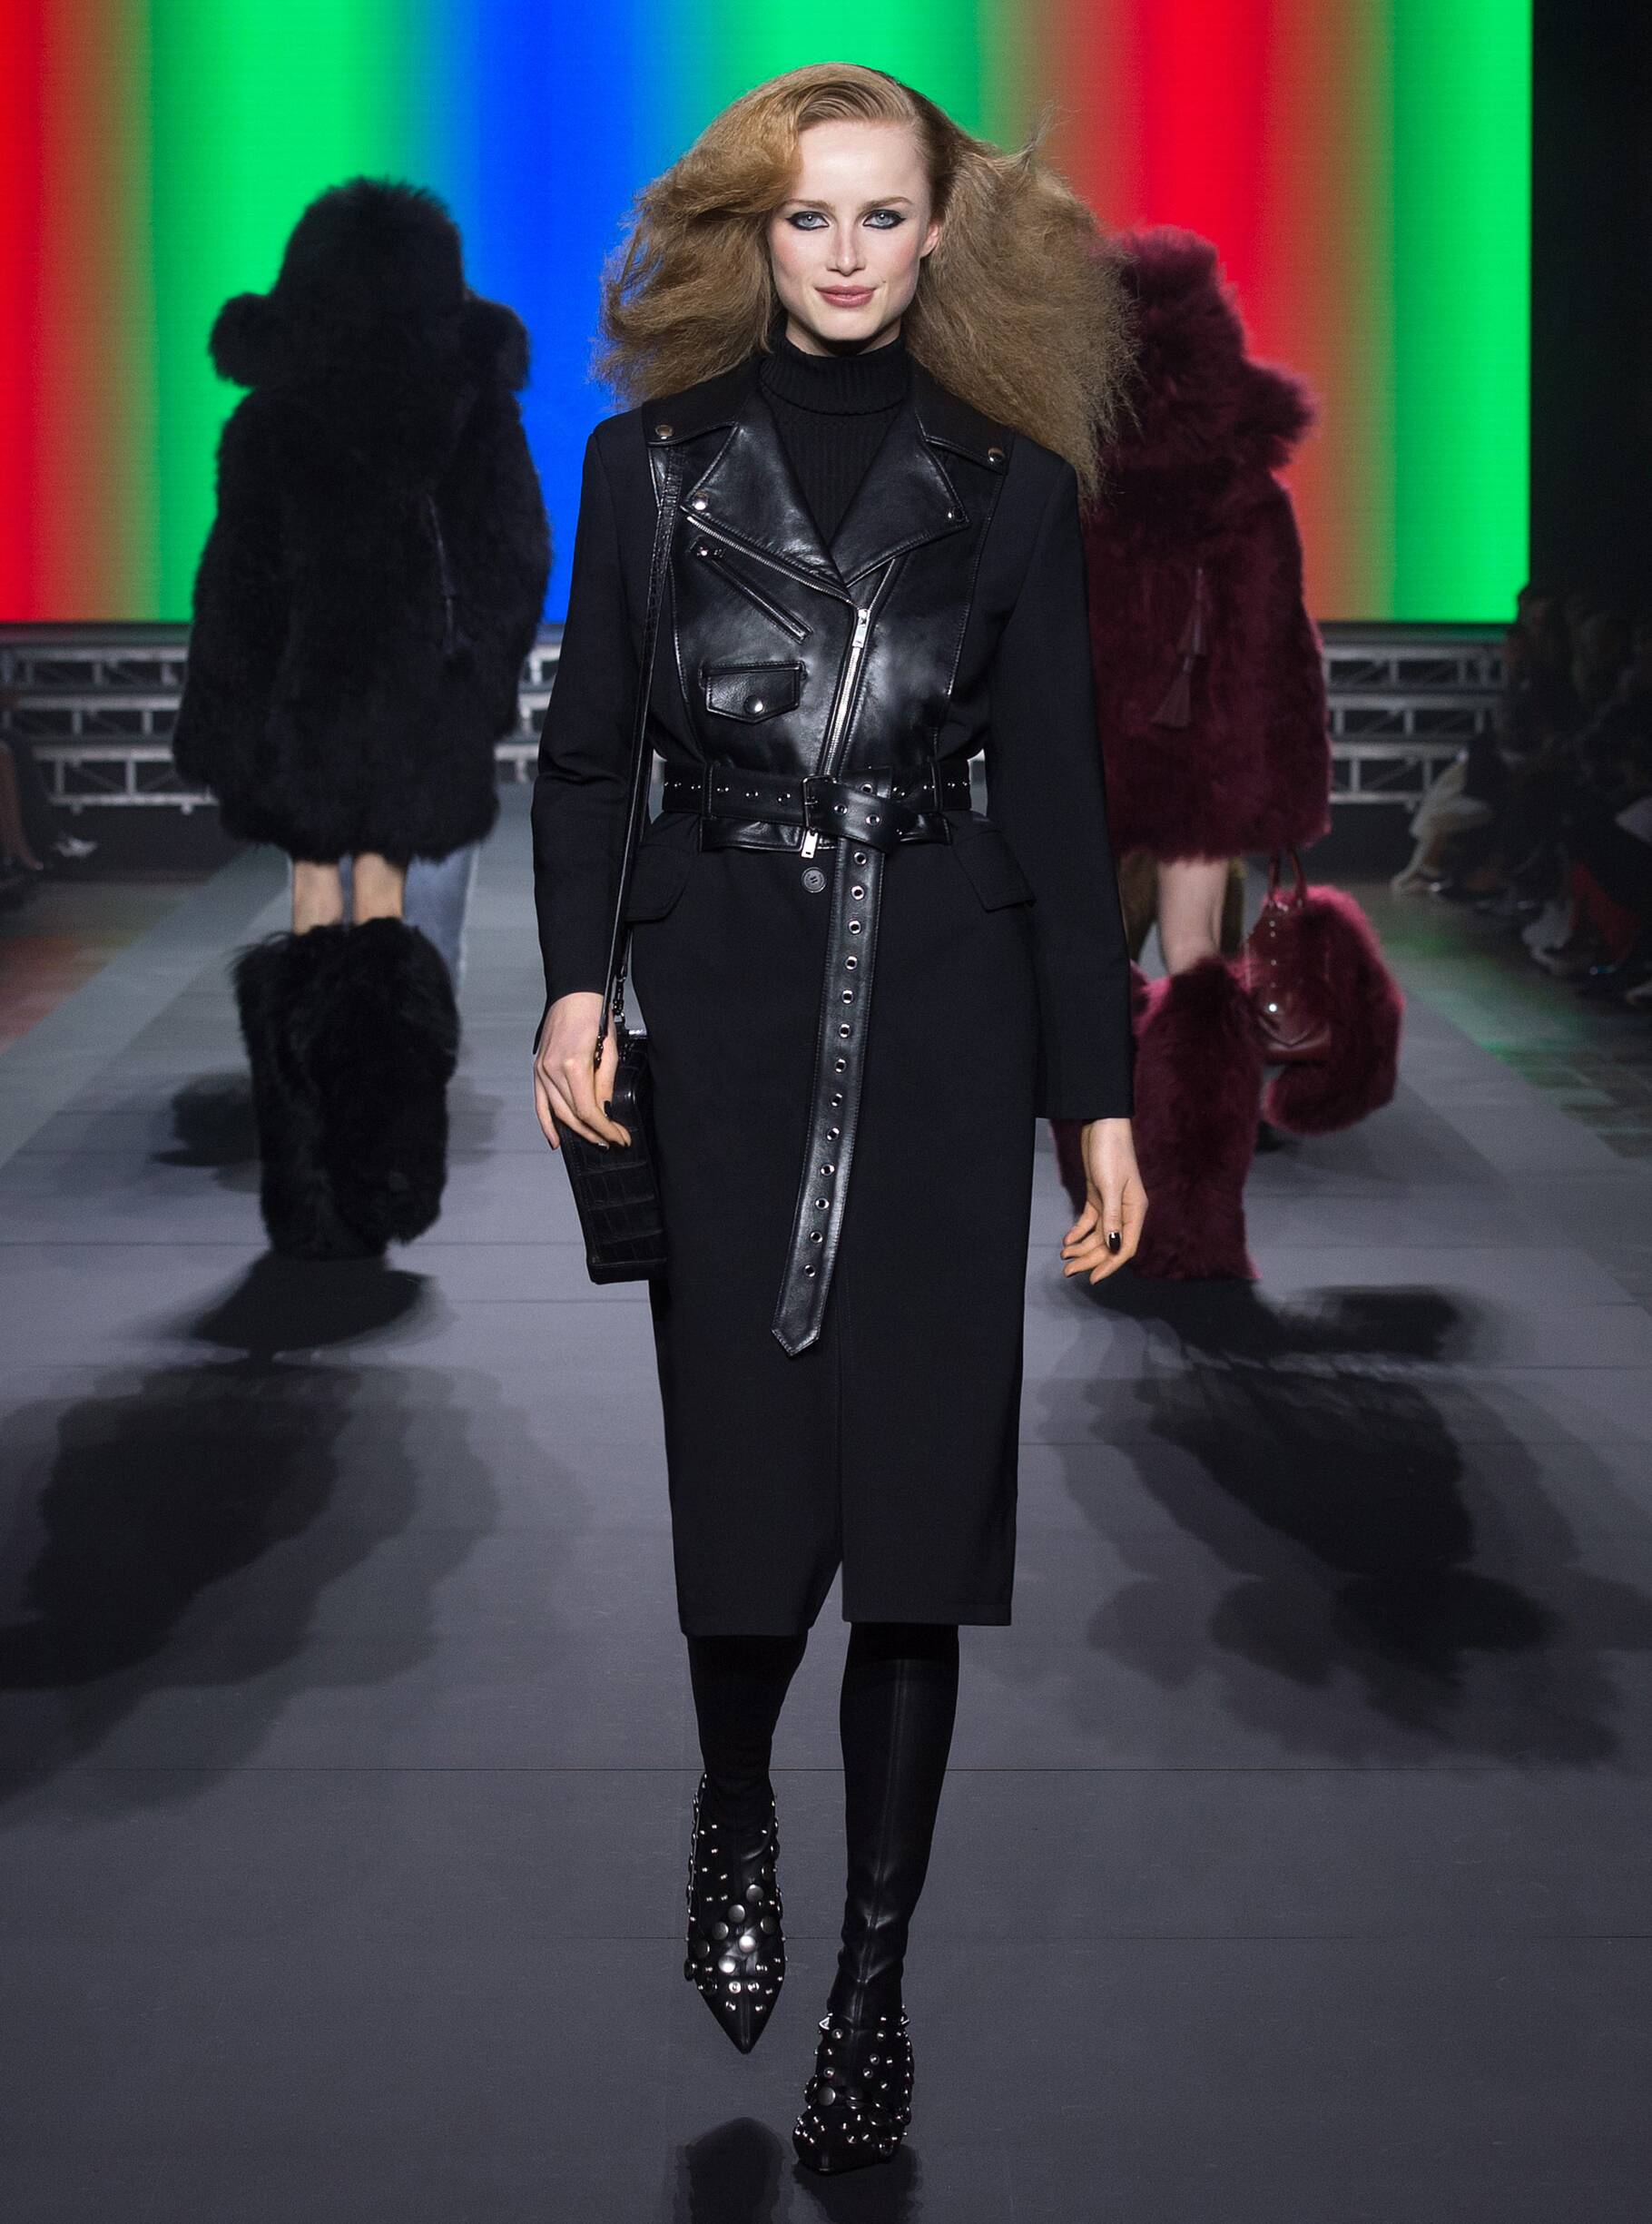 df90893b718 SONIA RYKIEL FALL WINTER 2018 WOMEN'S COLLECTION – PARIS FASHION WEEK